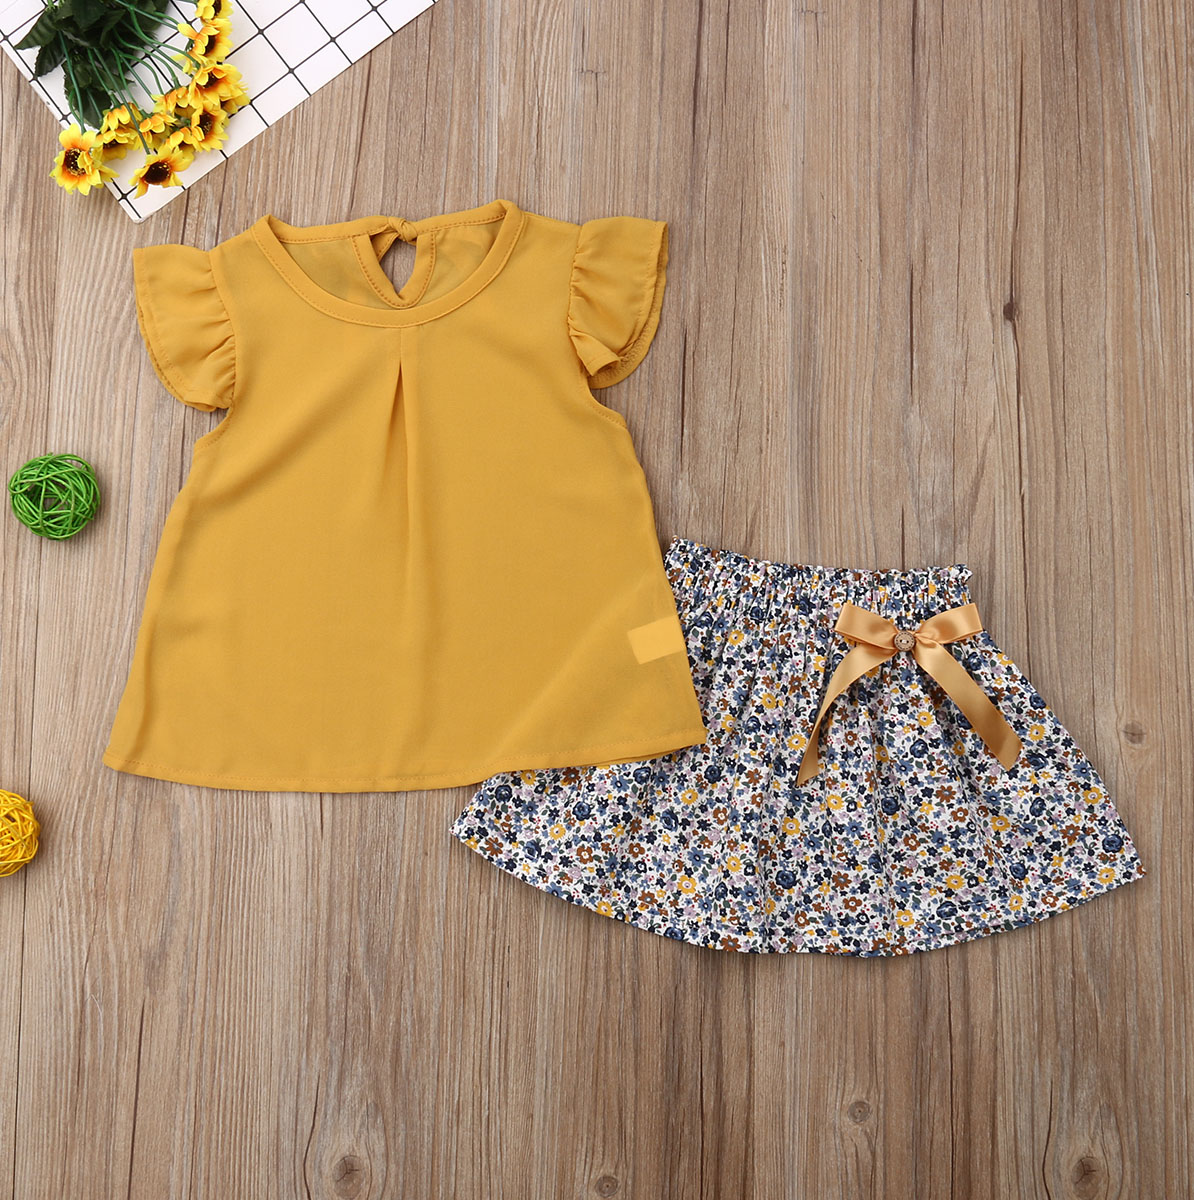 Toddler Baby Girl Summer Clothes Fly Sleeve Ruffle Tops Flower Print Tutu Skirt 2pcs Outfits Clothes